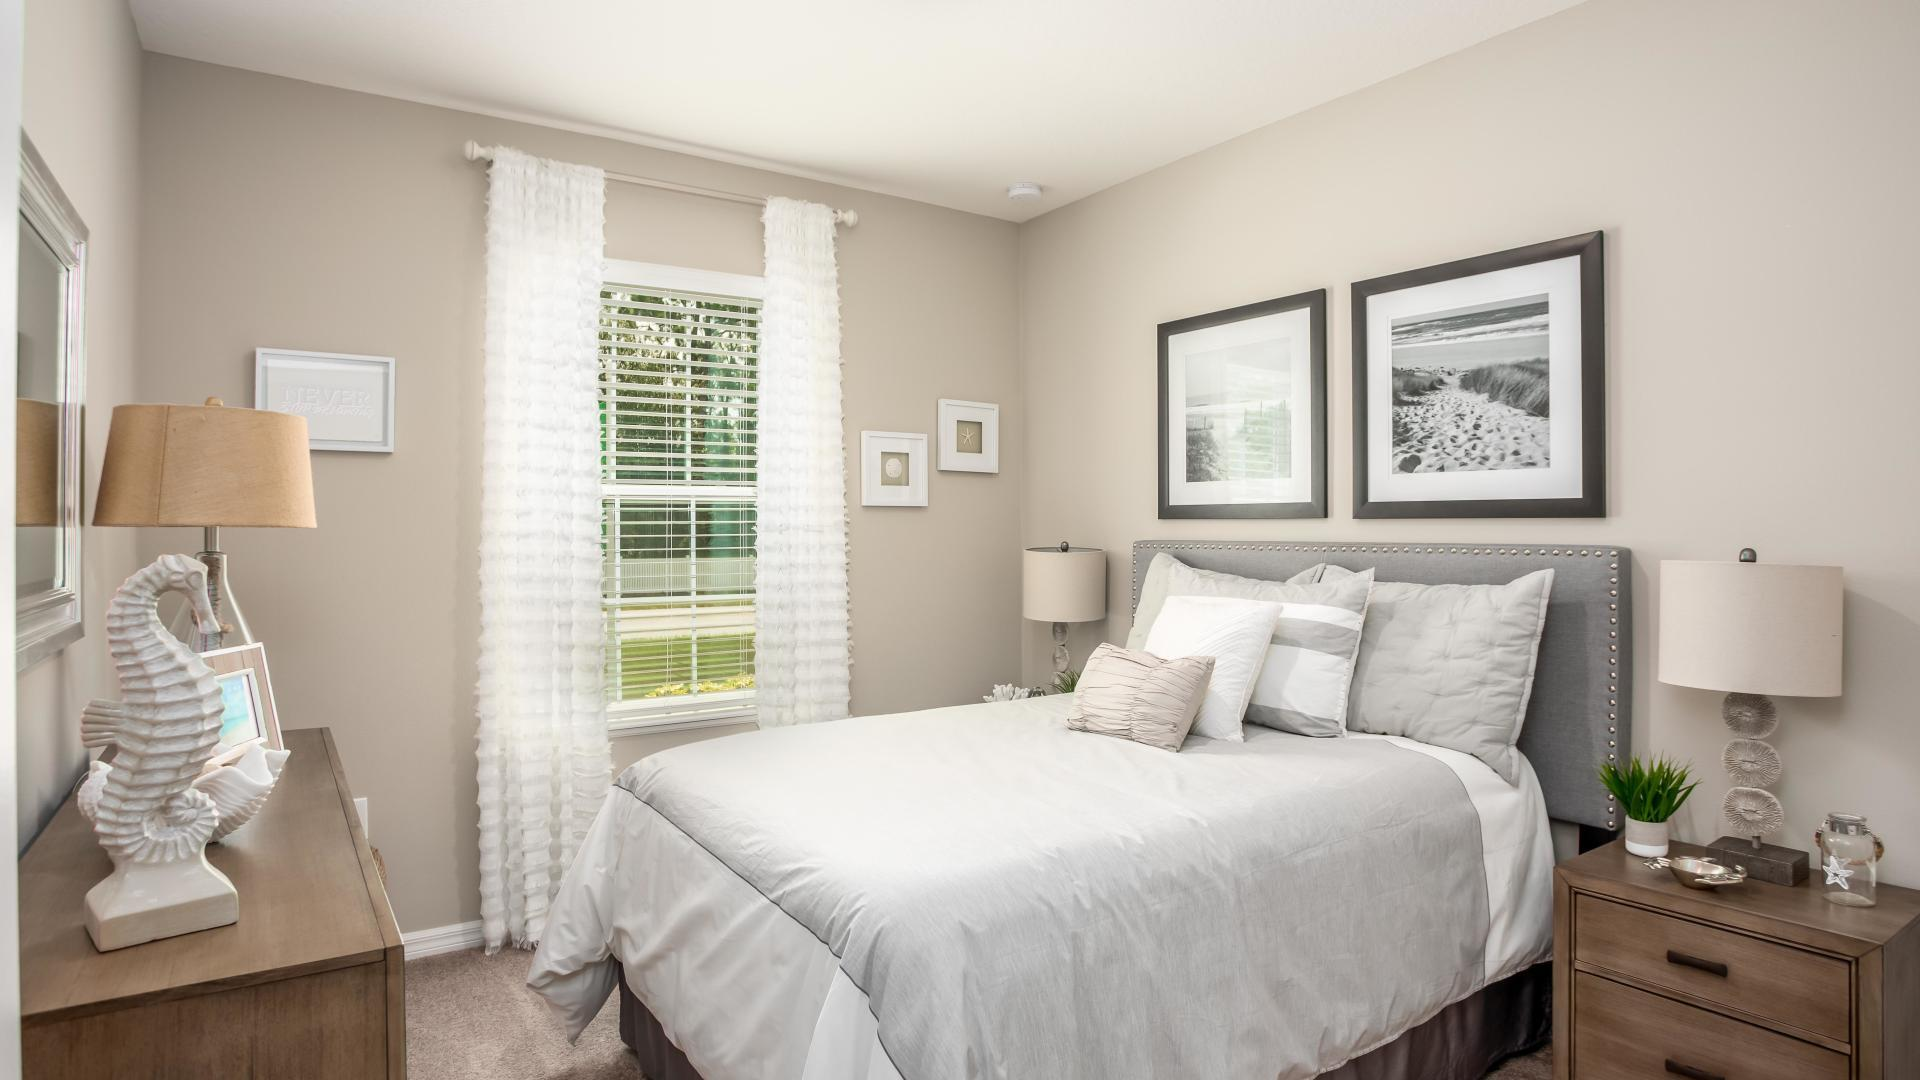 Bedroom featured in the Mesquite By Maronda Homes in Orlando, FL